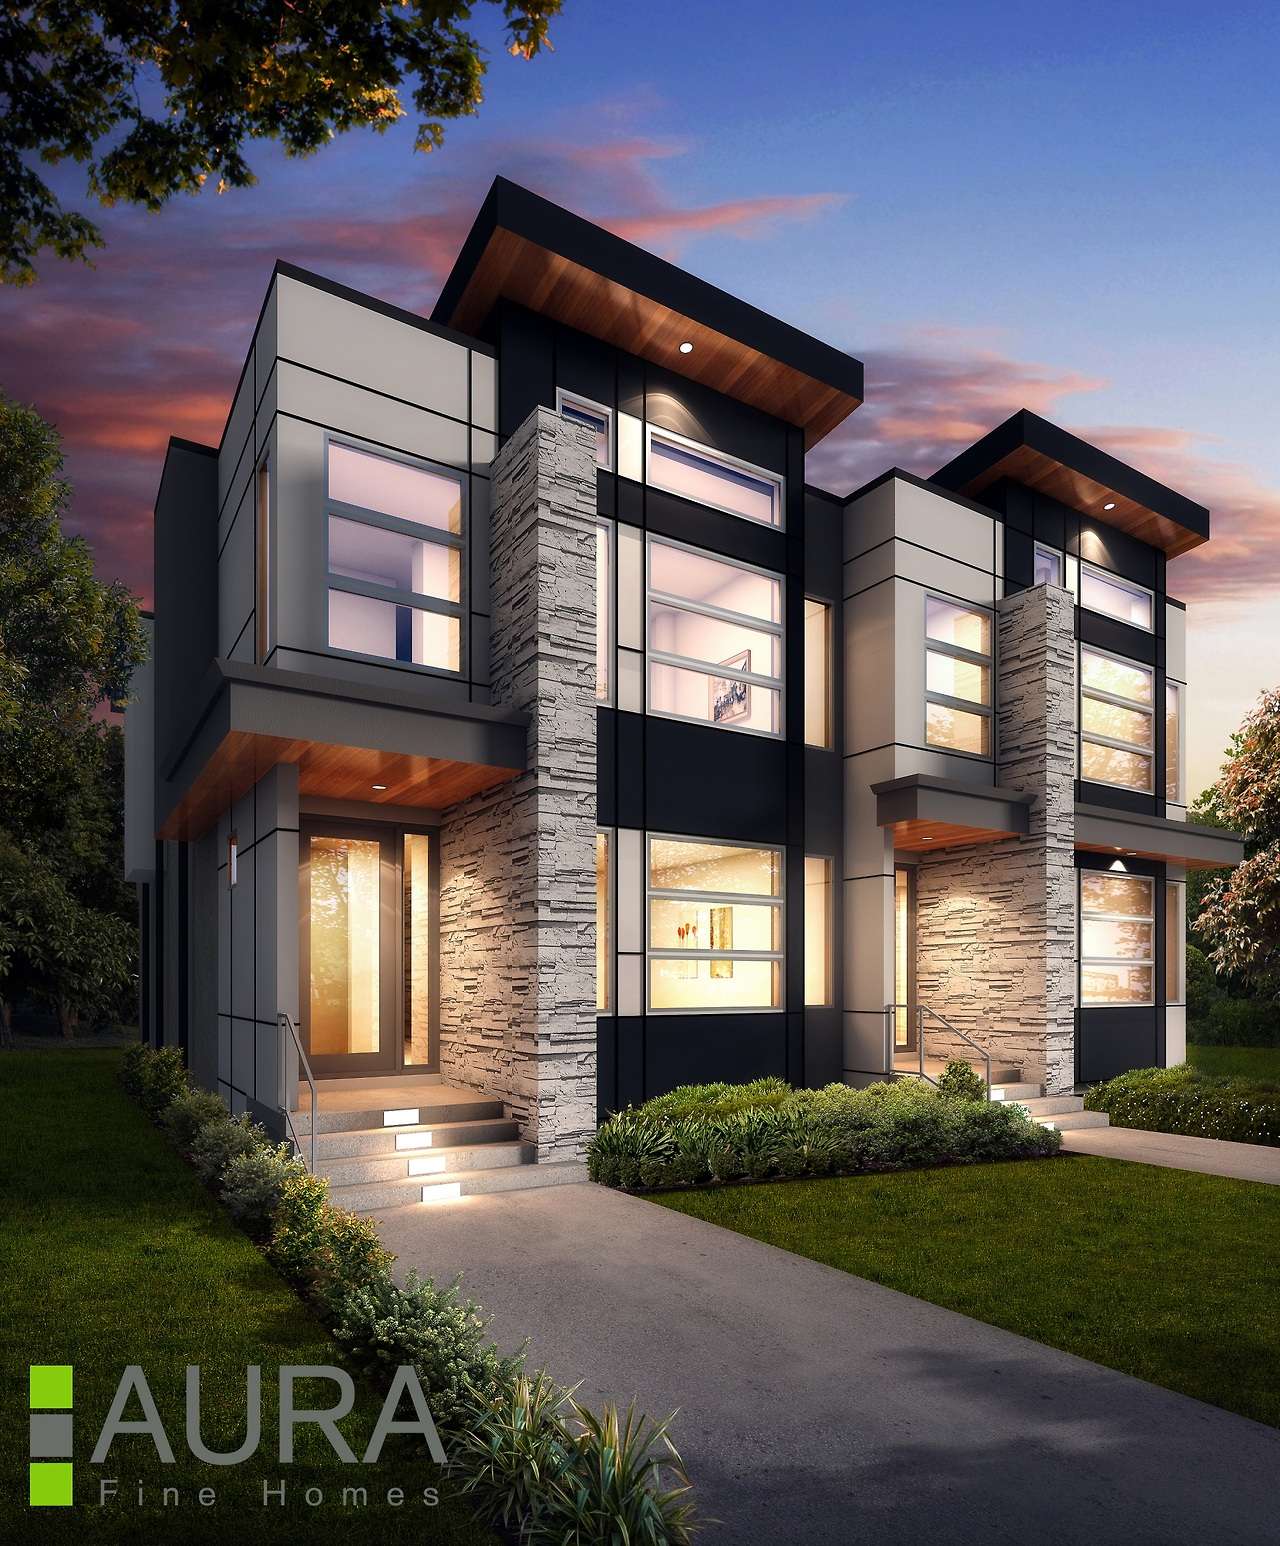 We designed this Killarney Semi-Detached for Aura Fine Homes. It has been under construction for several months now, and we'll try to get some construction photos up soon!